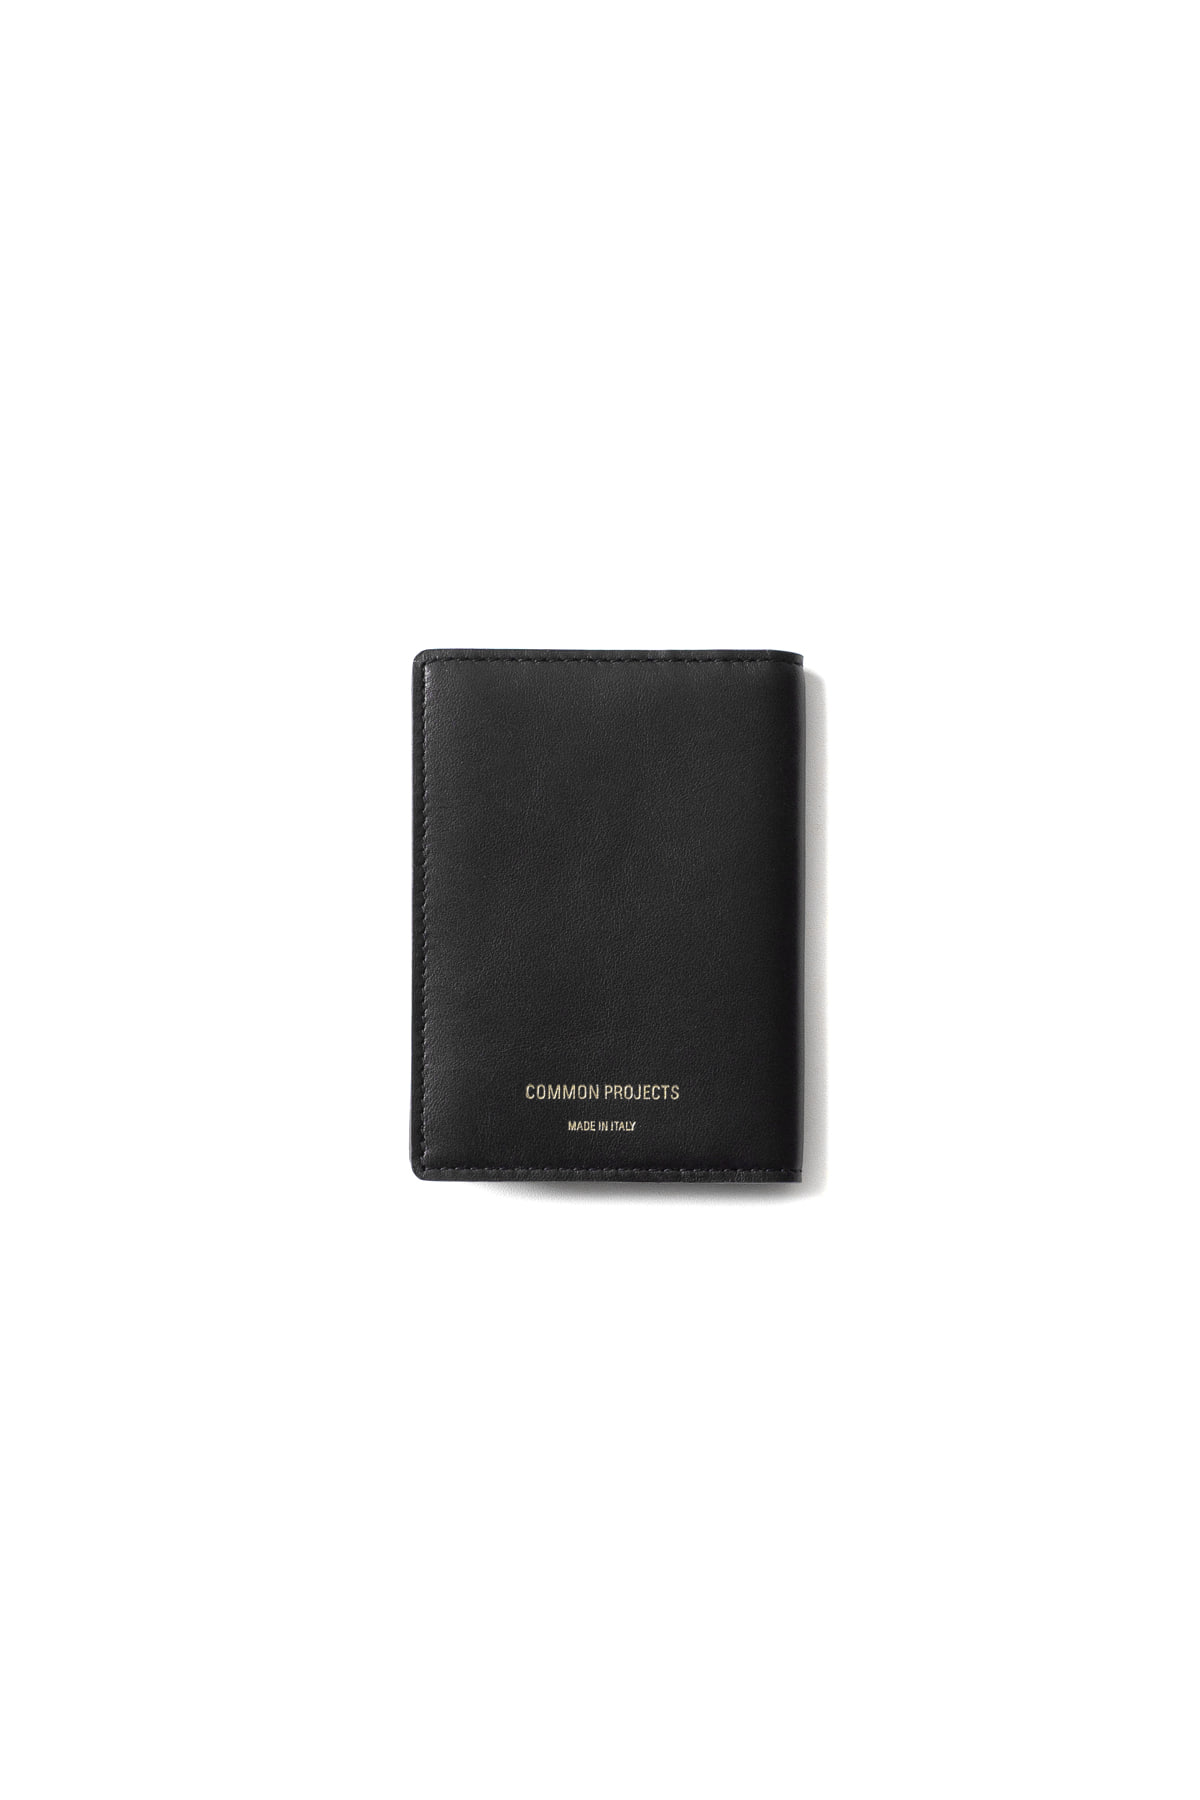 Common Projects : Card Holder Wallet (Black)